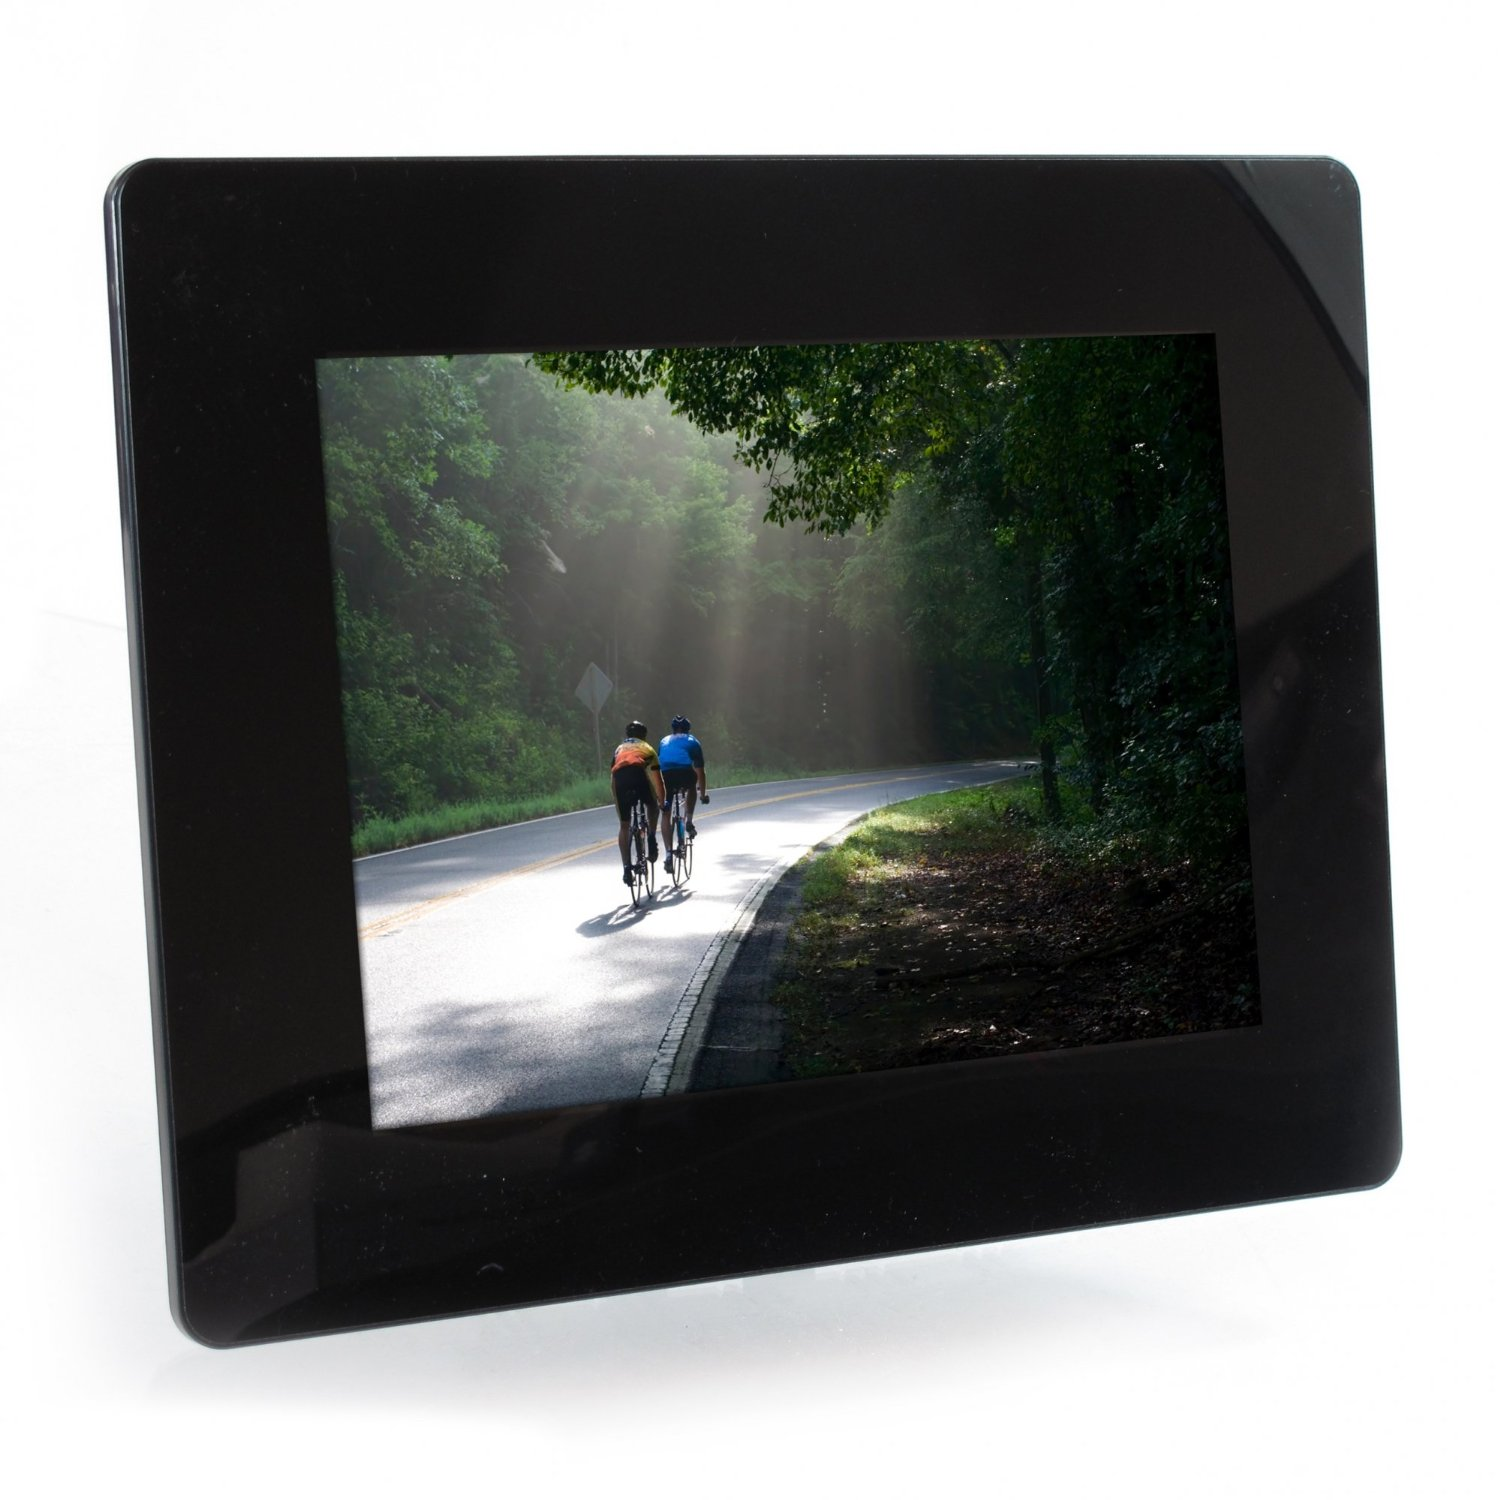 10.4-Inch 800x600 Digital Photo Frame with 2GB Internal Memory - (DFM1043) -